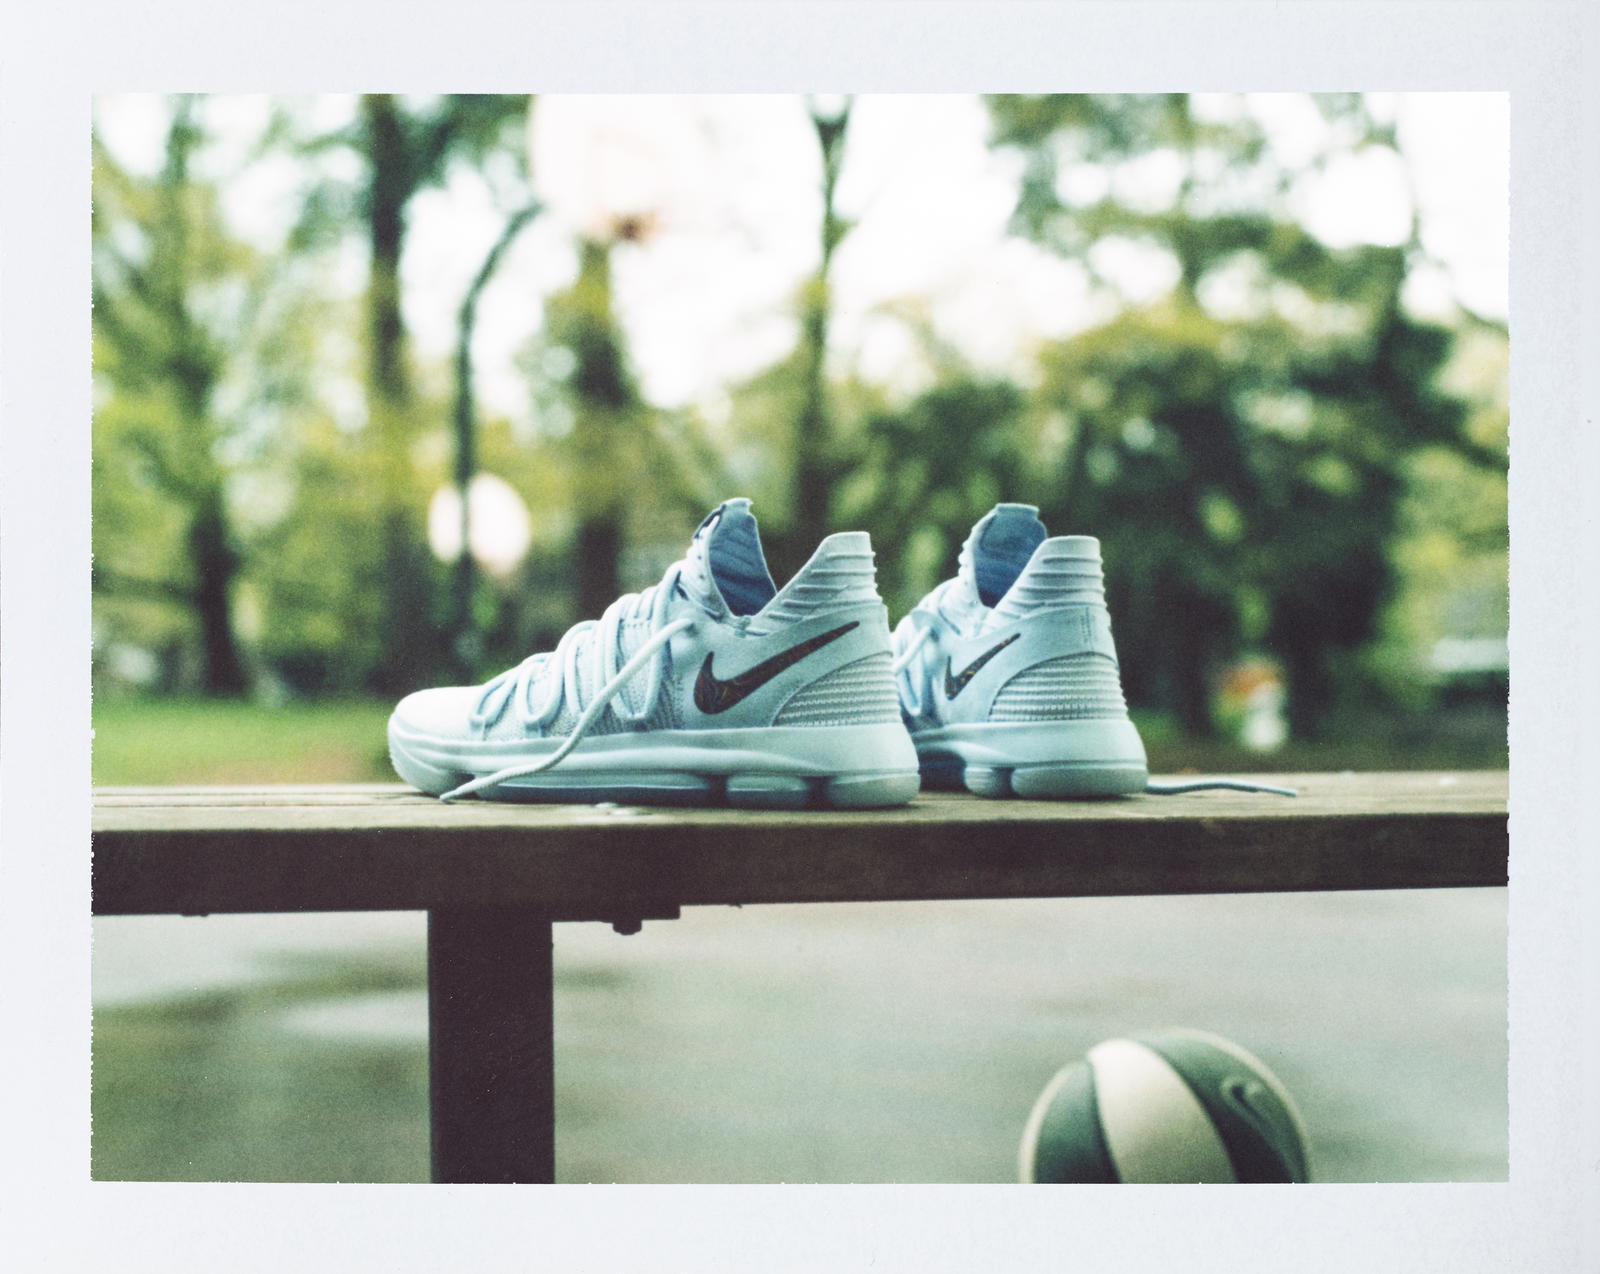 KD10: More than meets the eye